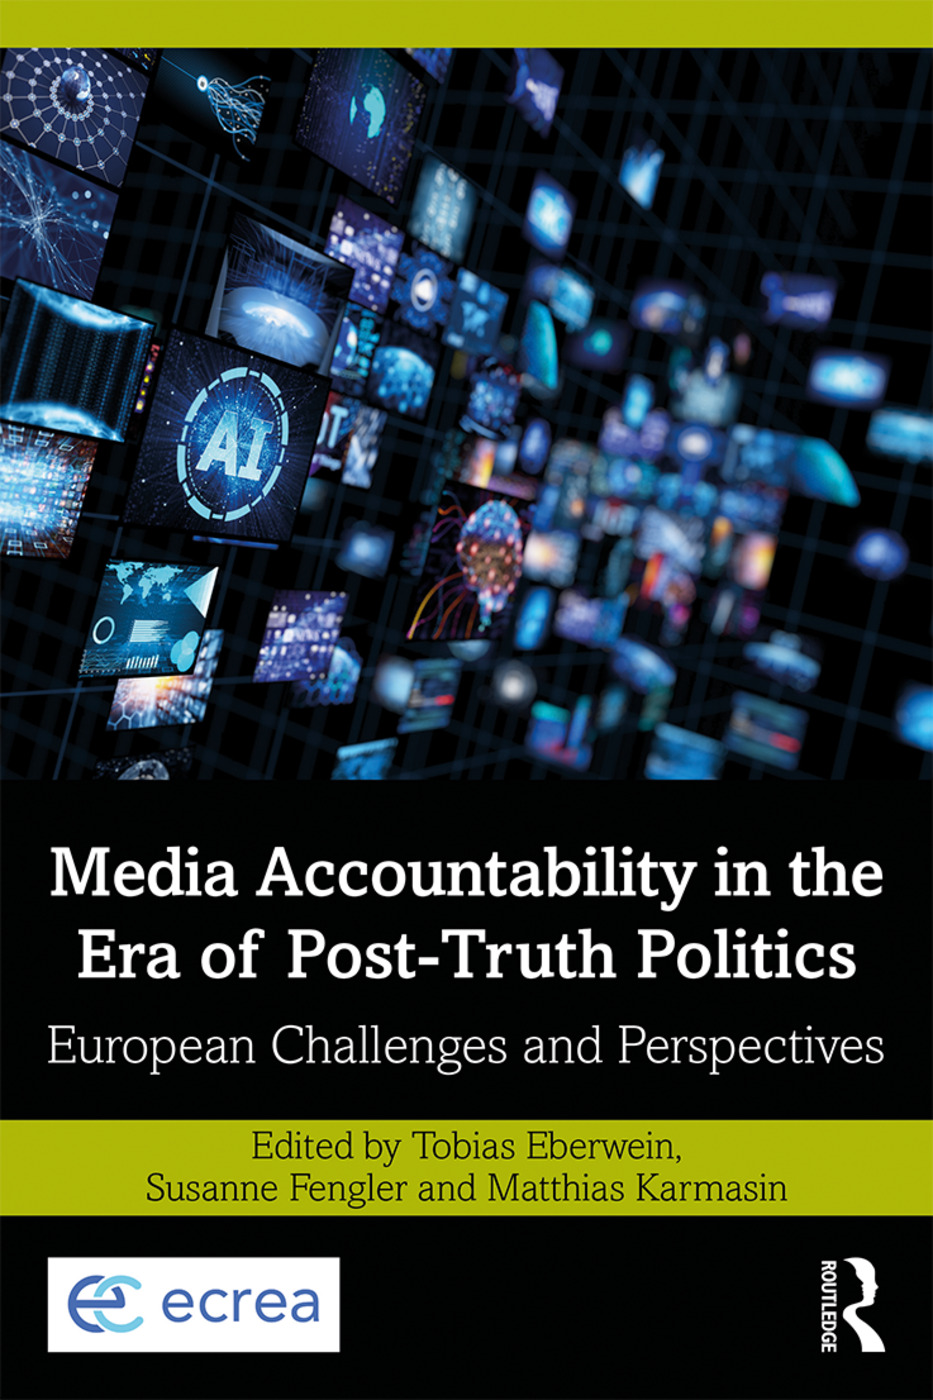 Media Accountability in the Era of Post-Truth Politics: European Challenges and Perspectives book cover